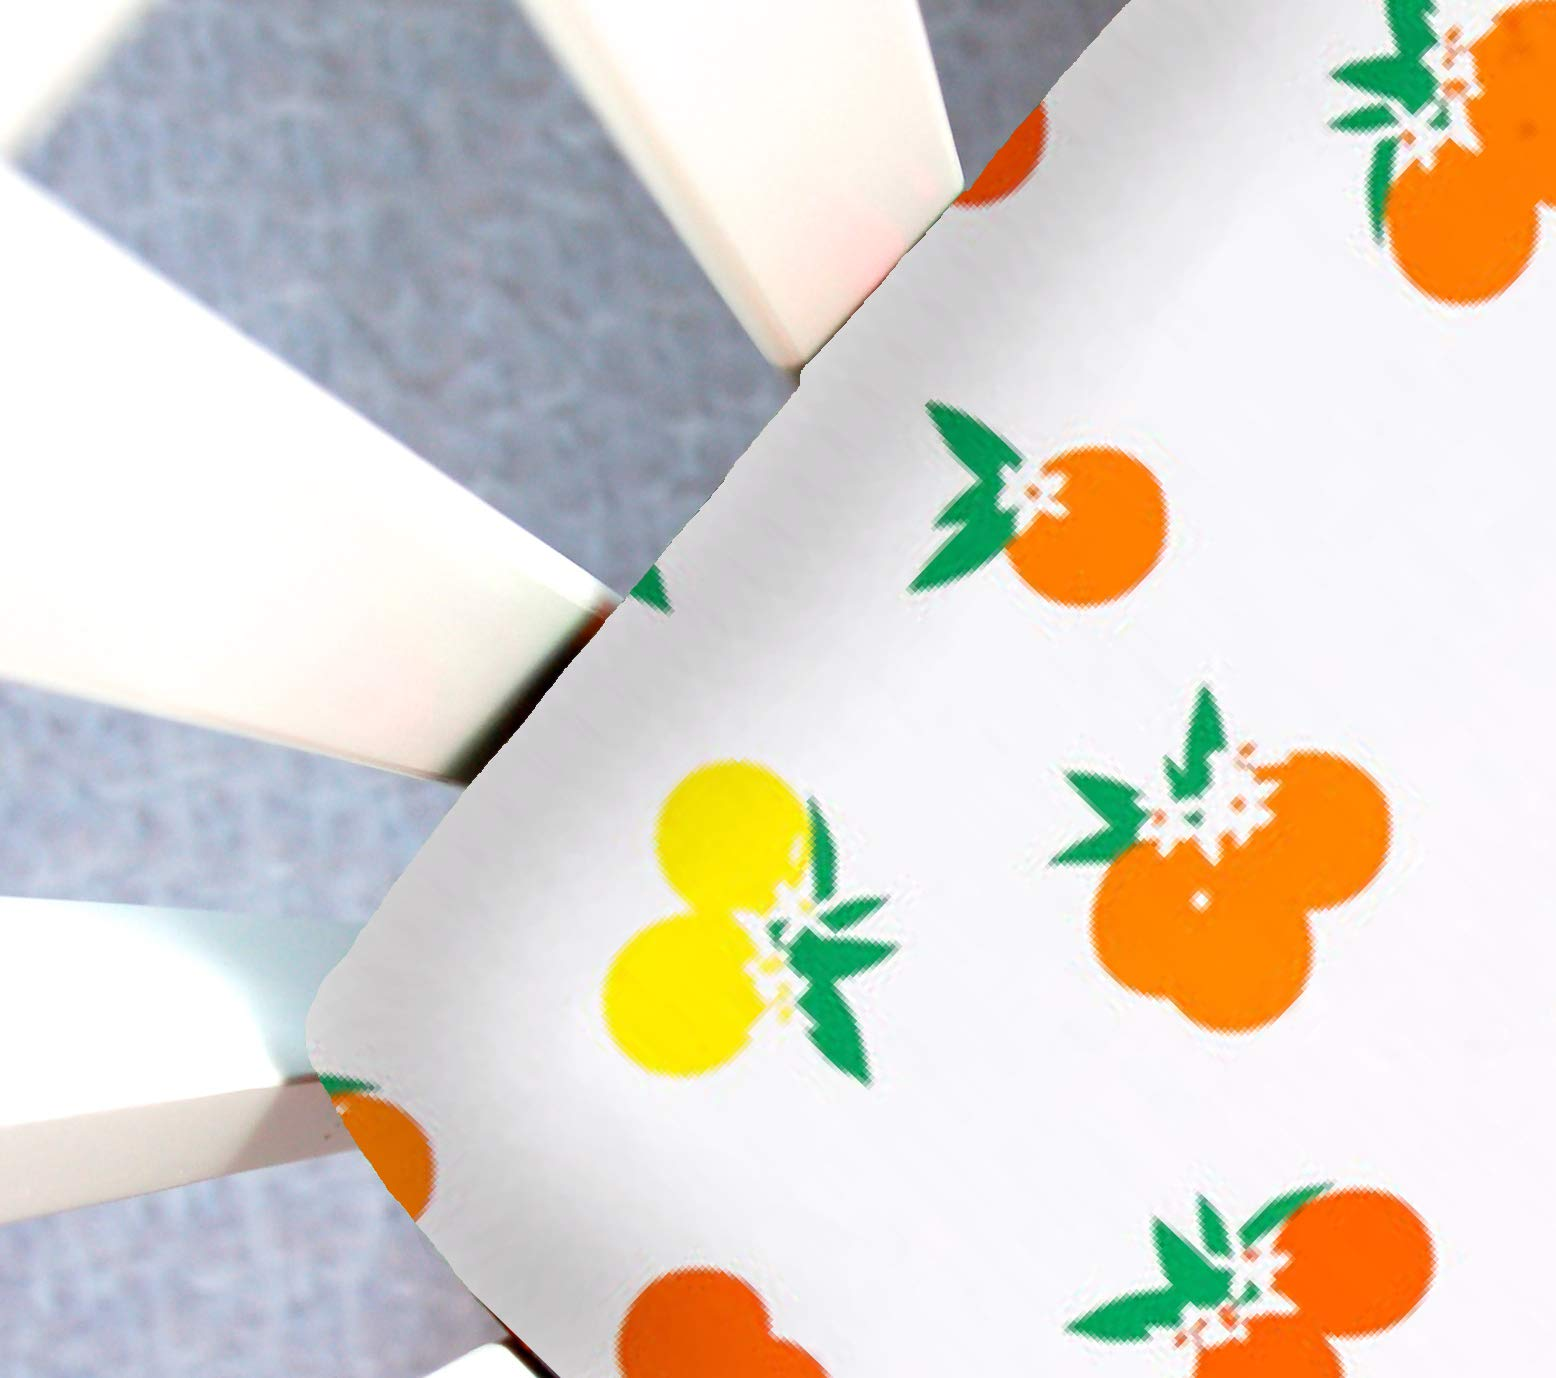 Little Moose by Liza Handmade Sheet Made to Fit Baby Bjorn Travel Crib in Citrus Sunrise (Oranges & Lemons). This Sheet was Not Created or Sold by Baby Bjorn. by Little Moose By Liza LLC